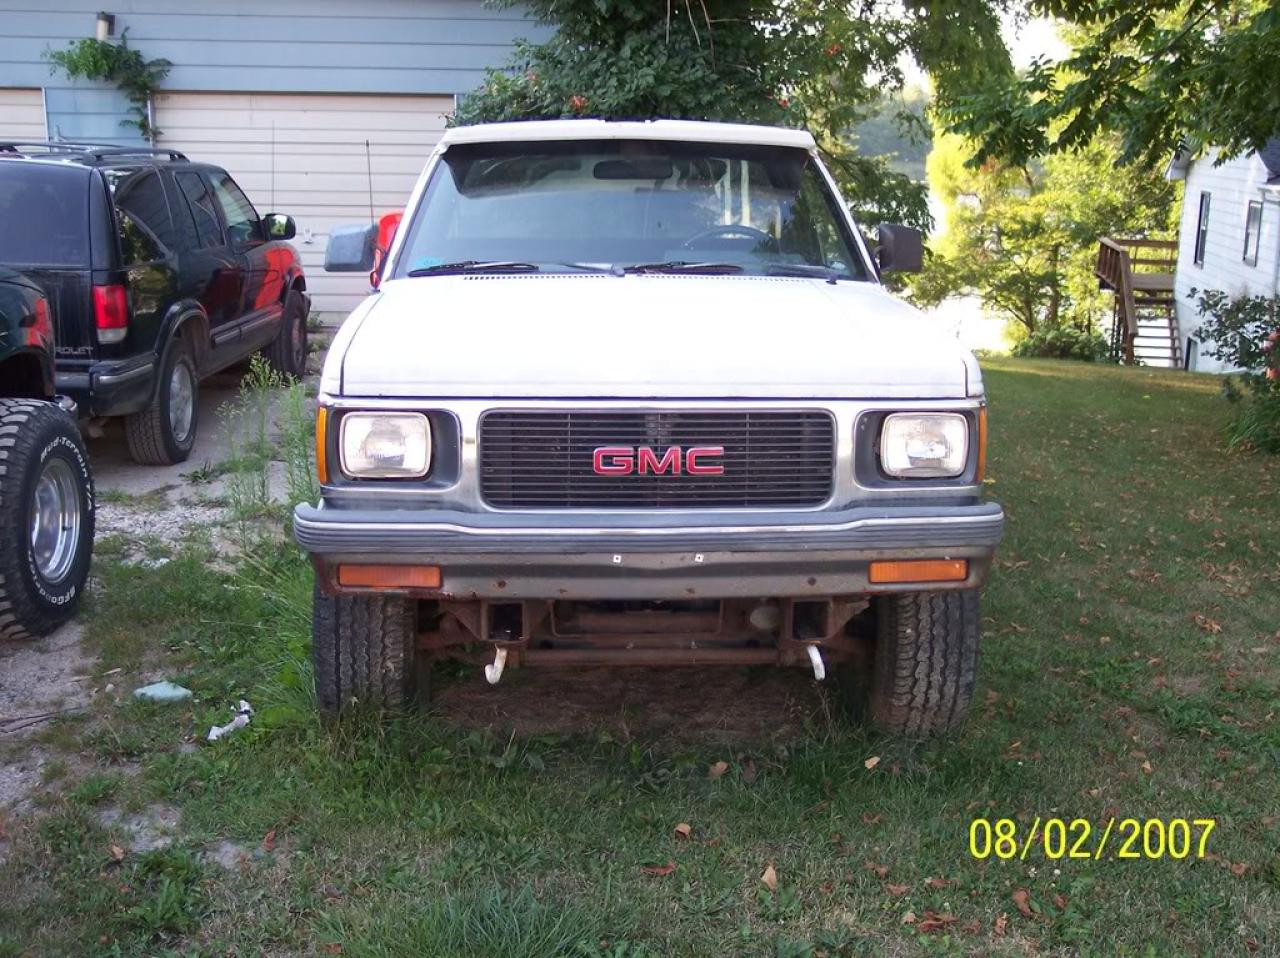 1991 gmc sonoma information and photos zombiedrive